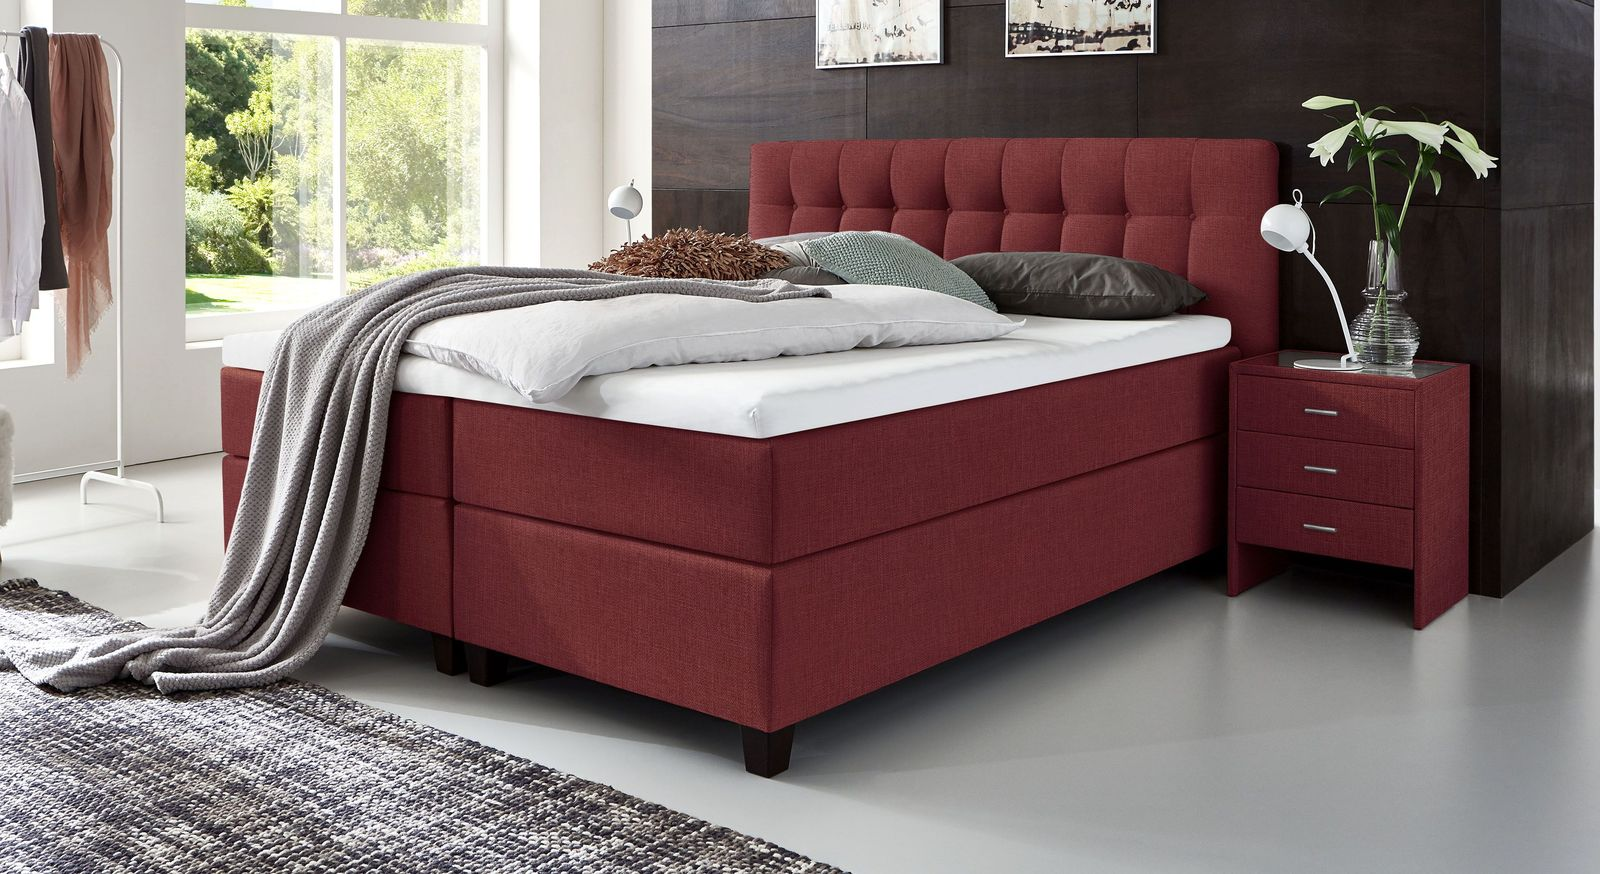 66 cm hohes Boxspringbett Luciano aus meliertem Webstoff in Rot